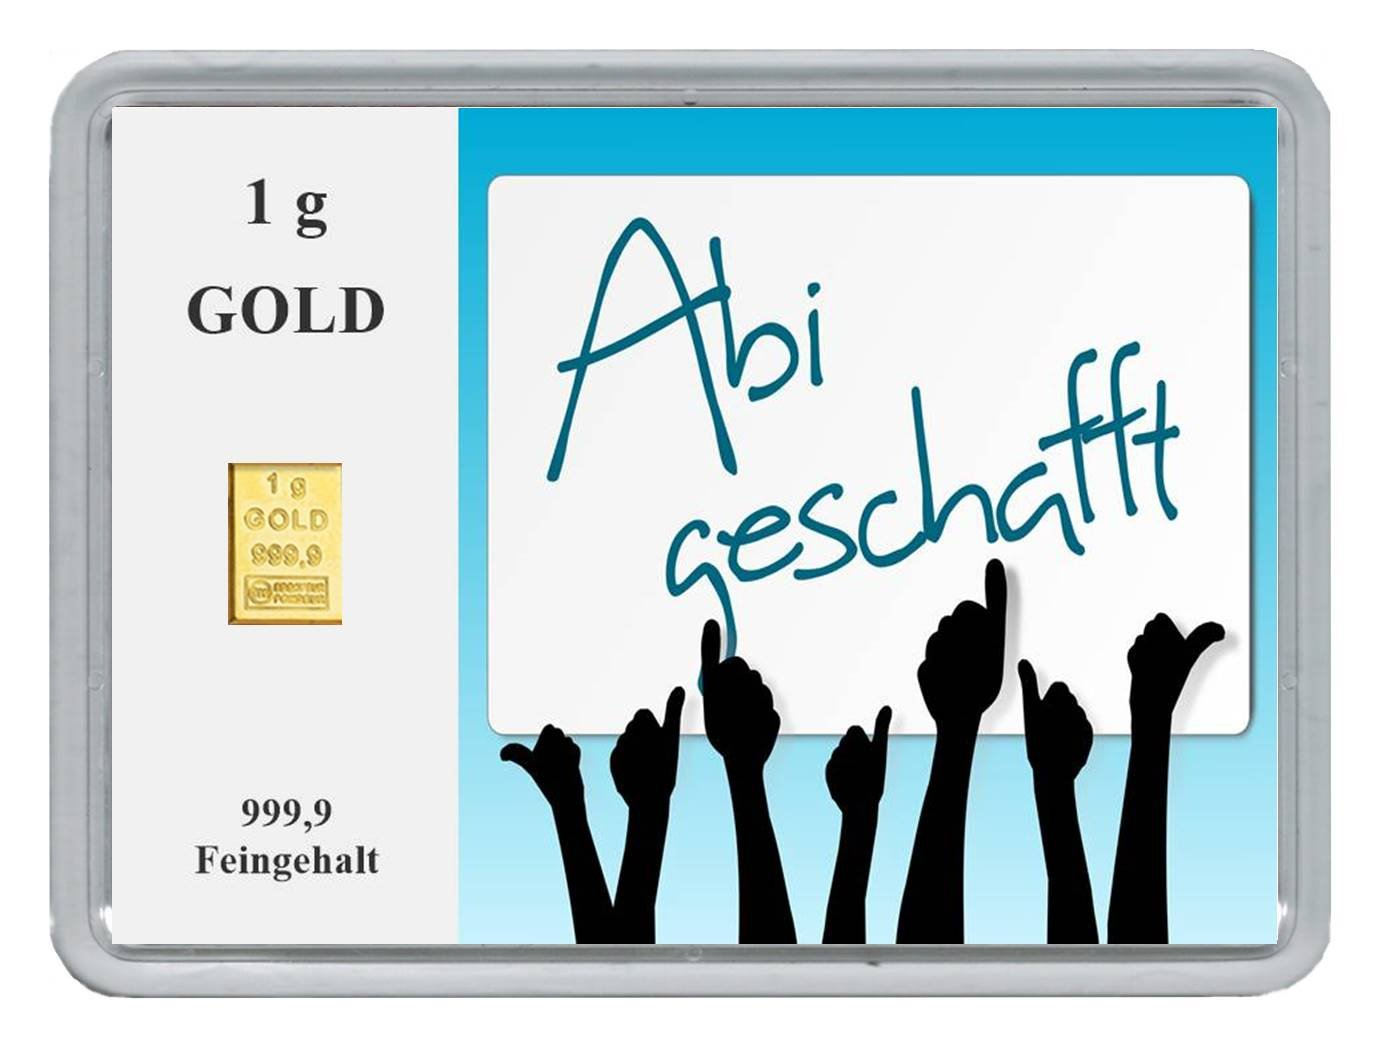 "New Edition 1g Goldbarren 999,9 Feingold in Motivbox""Abitur ."" in edler Goldverpackung"